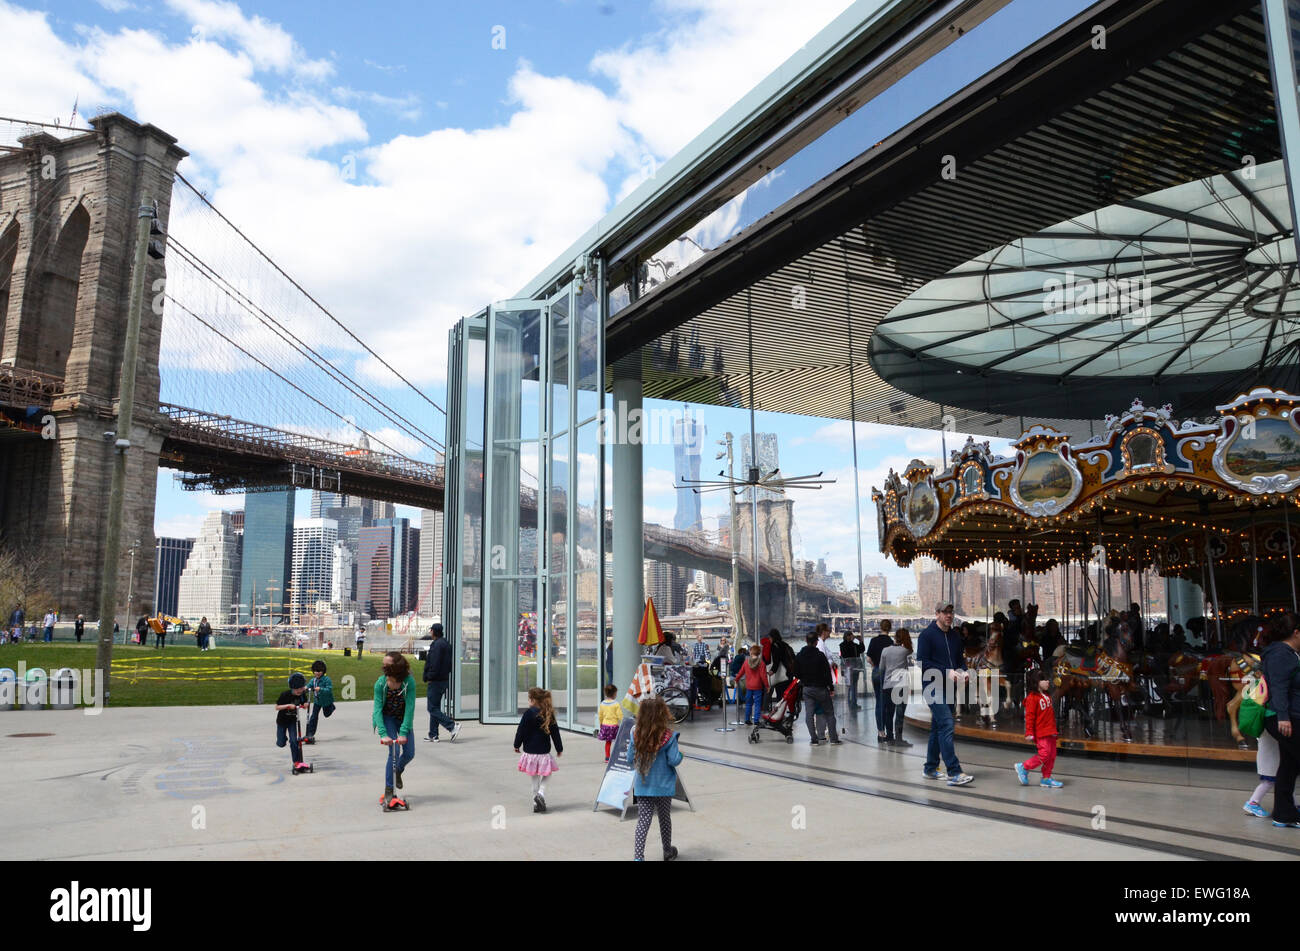 Jane's Carousel dumbo brooklyn bridge new york - Stock Image